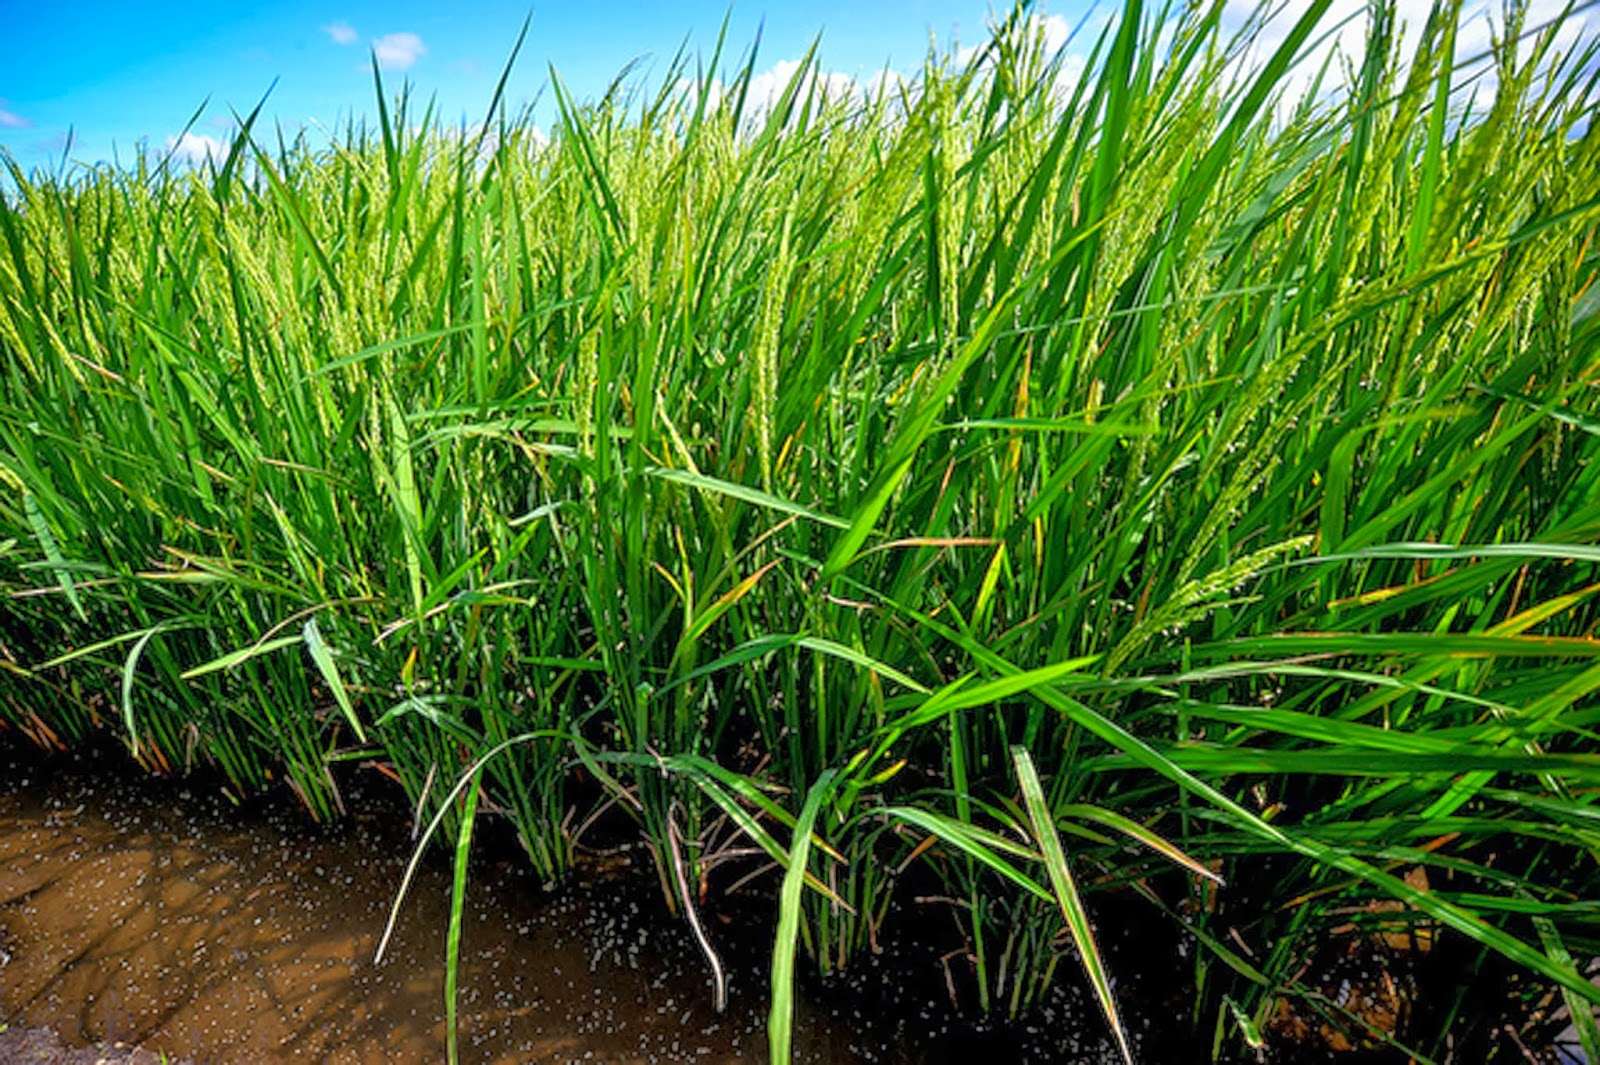 golden rice 9 how does it work the addition of 2 genes in the rice genome will complete the biosynthetic pathway 1 phytoene synthase (psy) derived from daffodils.